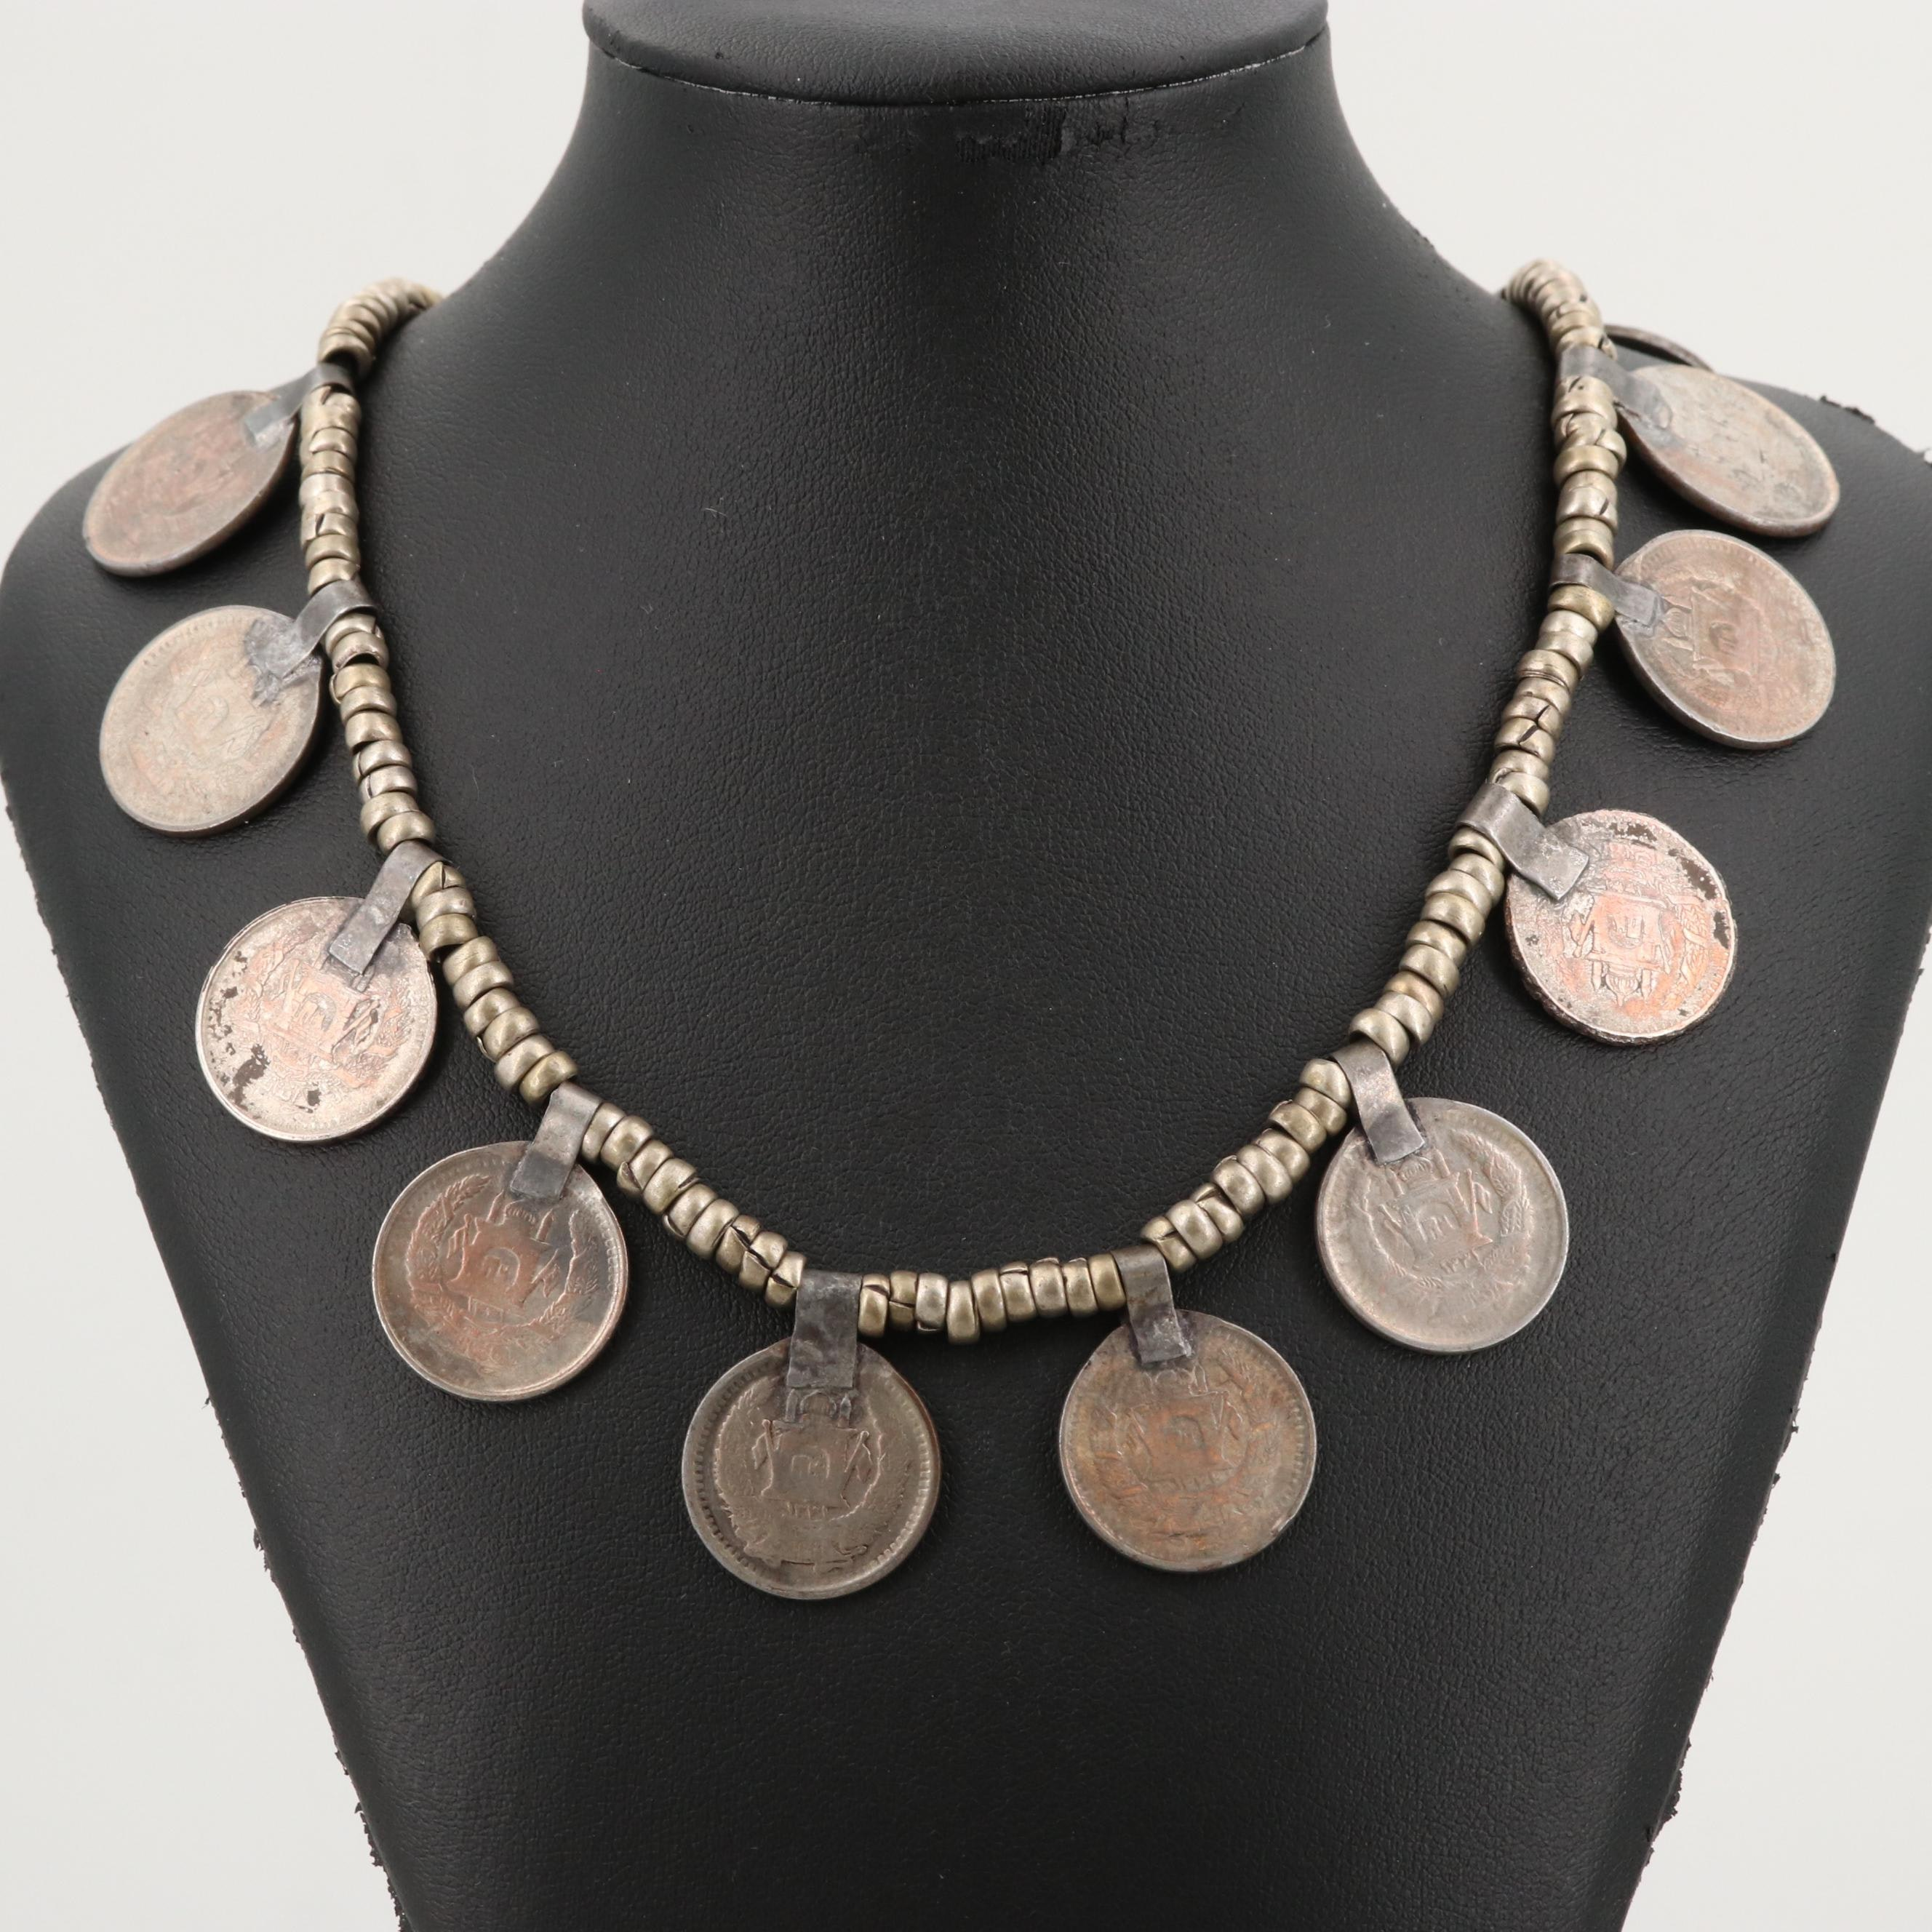 Necklace with Afganistan 25 Pul Coins